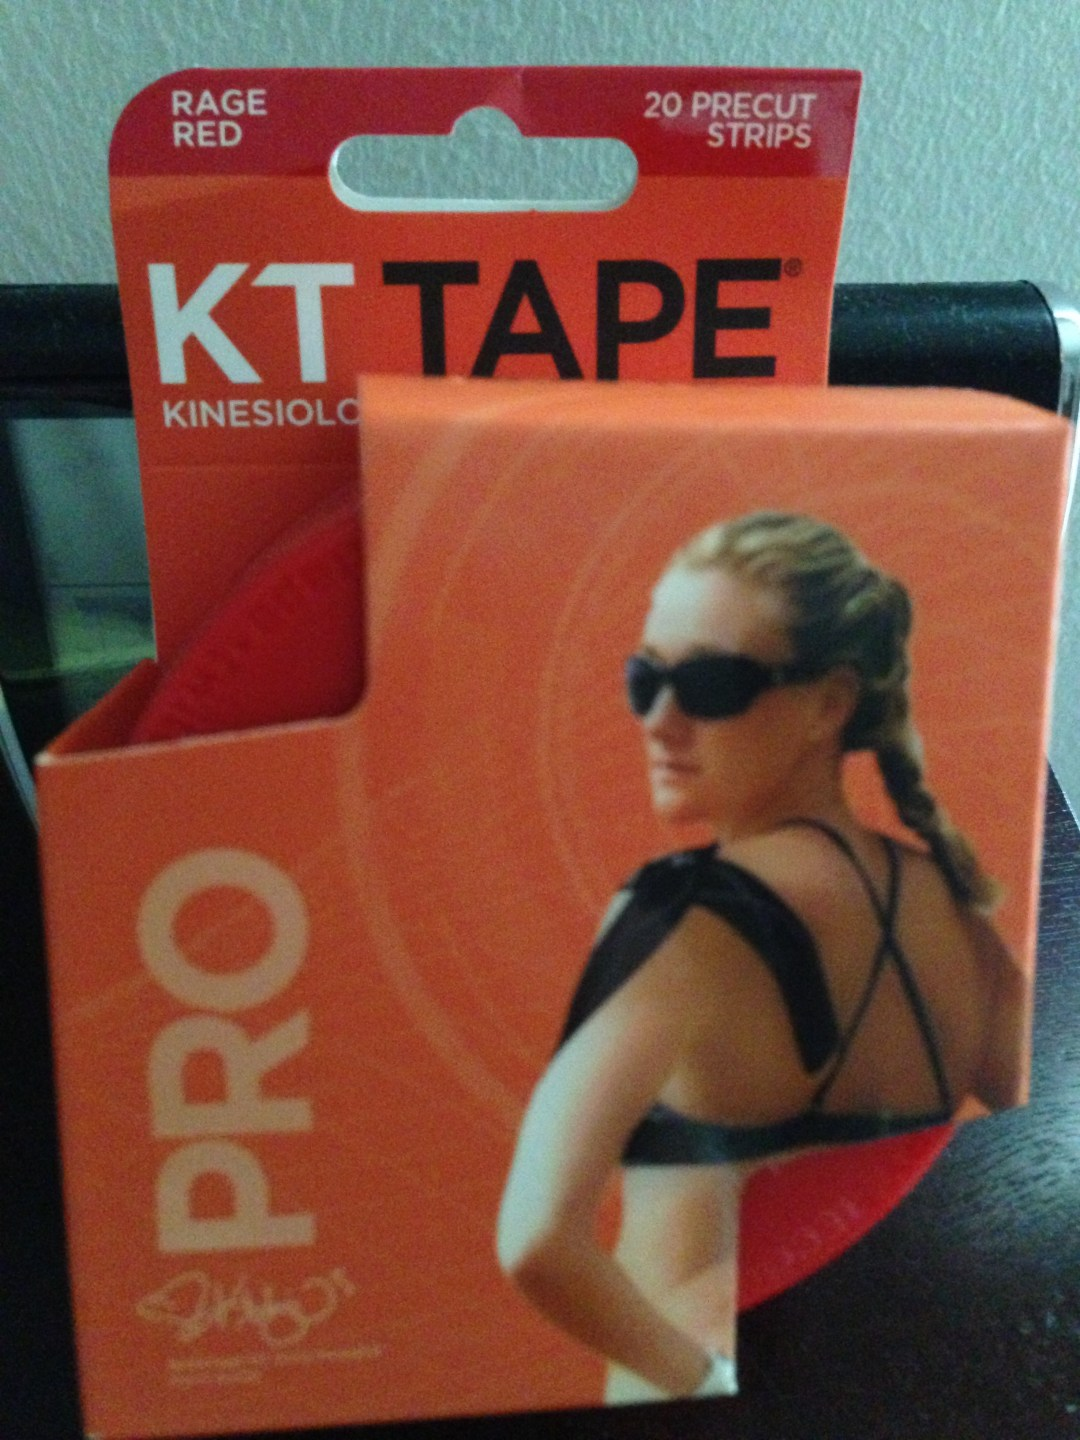 Free KT Tape from Father's Day giveaway